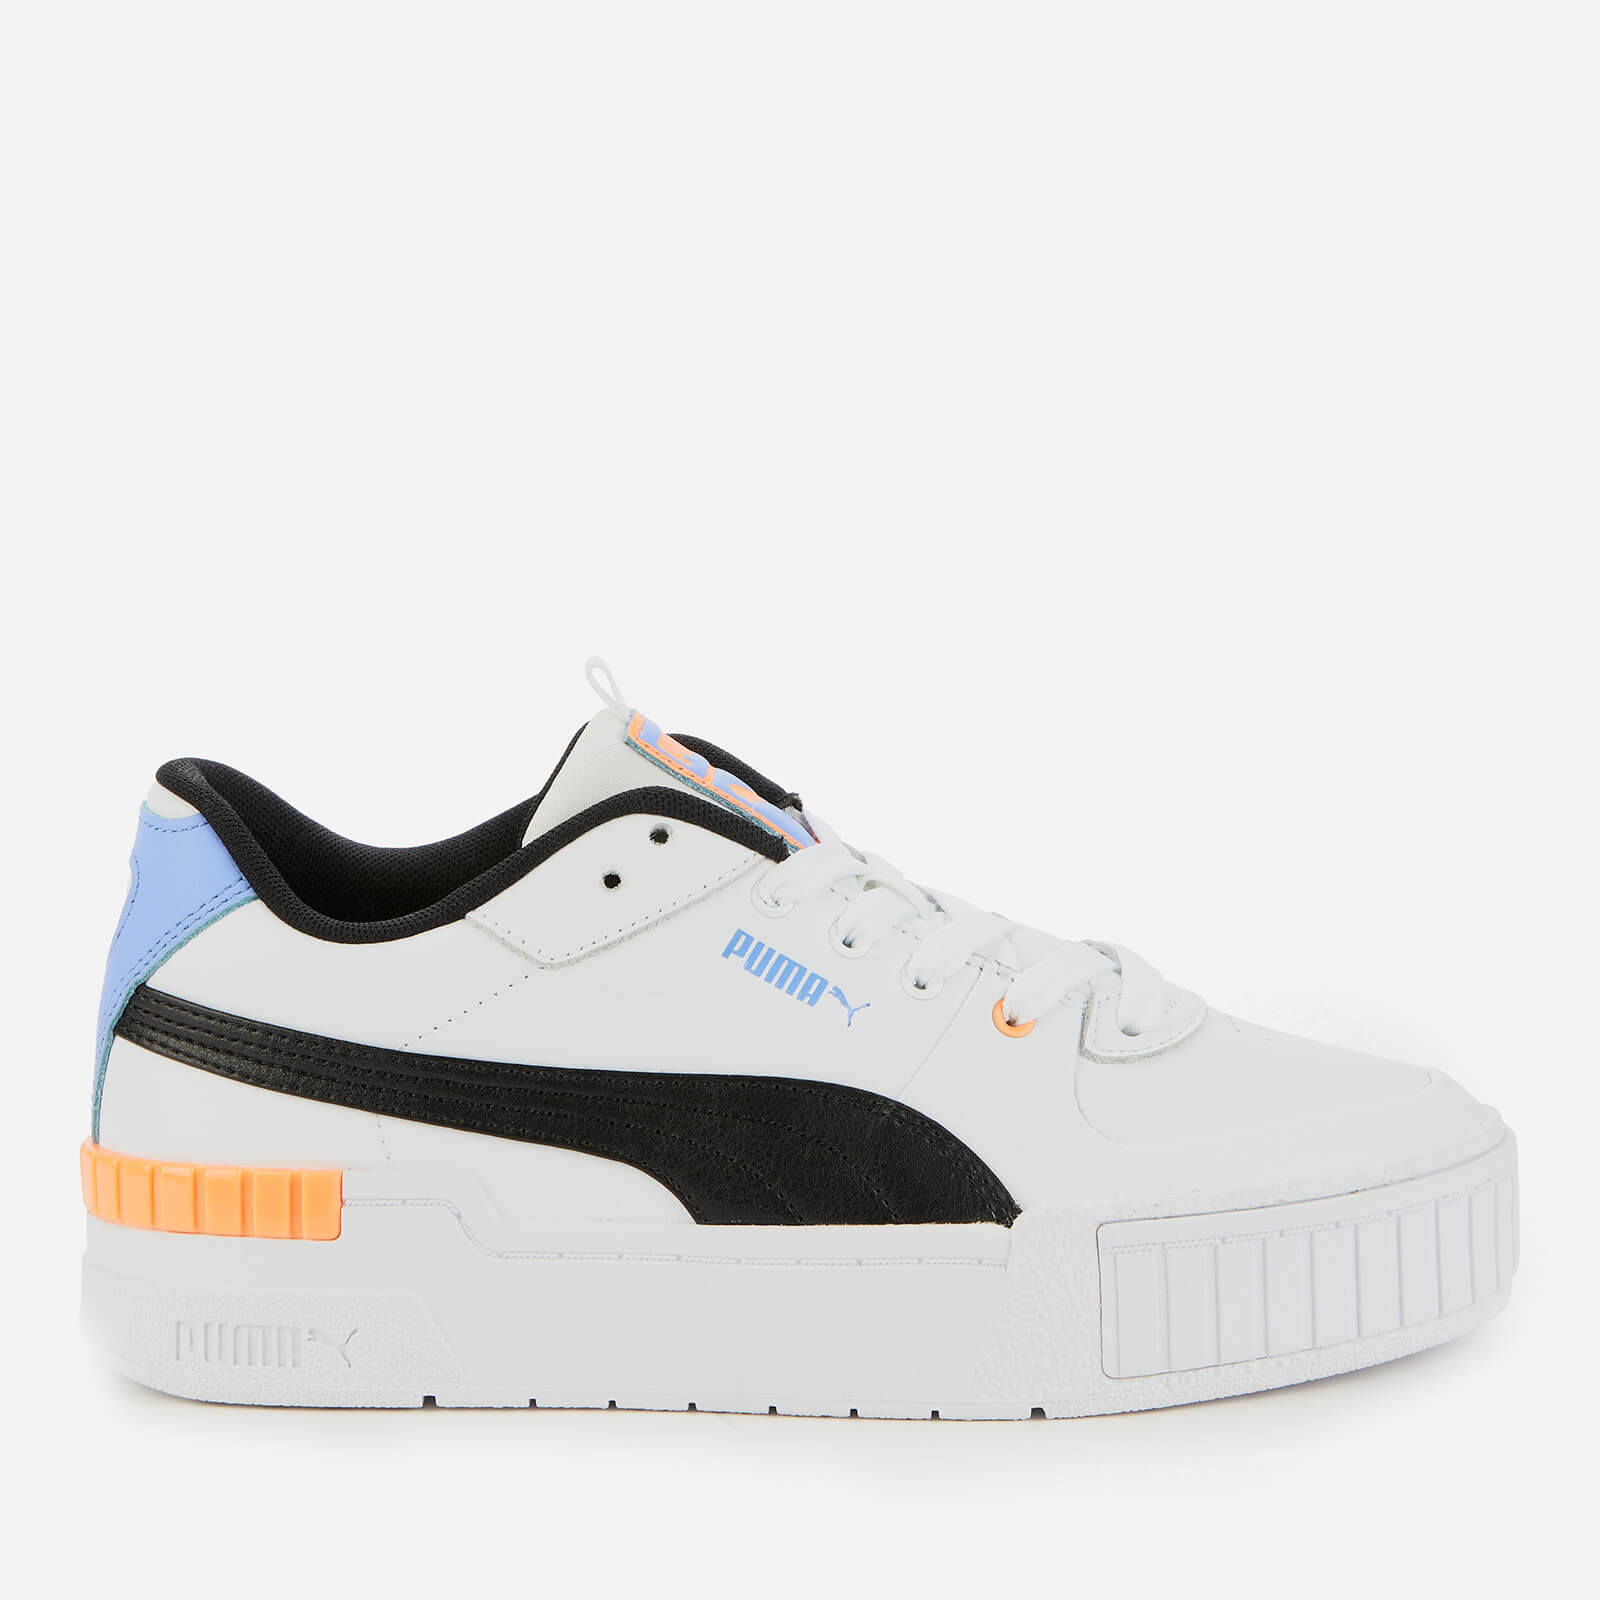 Puma Womens Cali Sport Trainers Puma White Soft Fluo Orange Uk 5